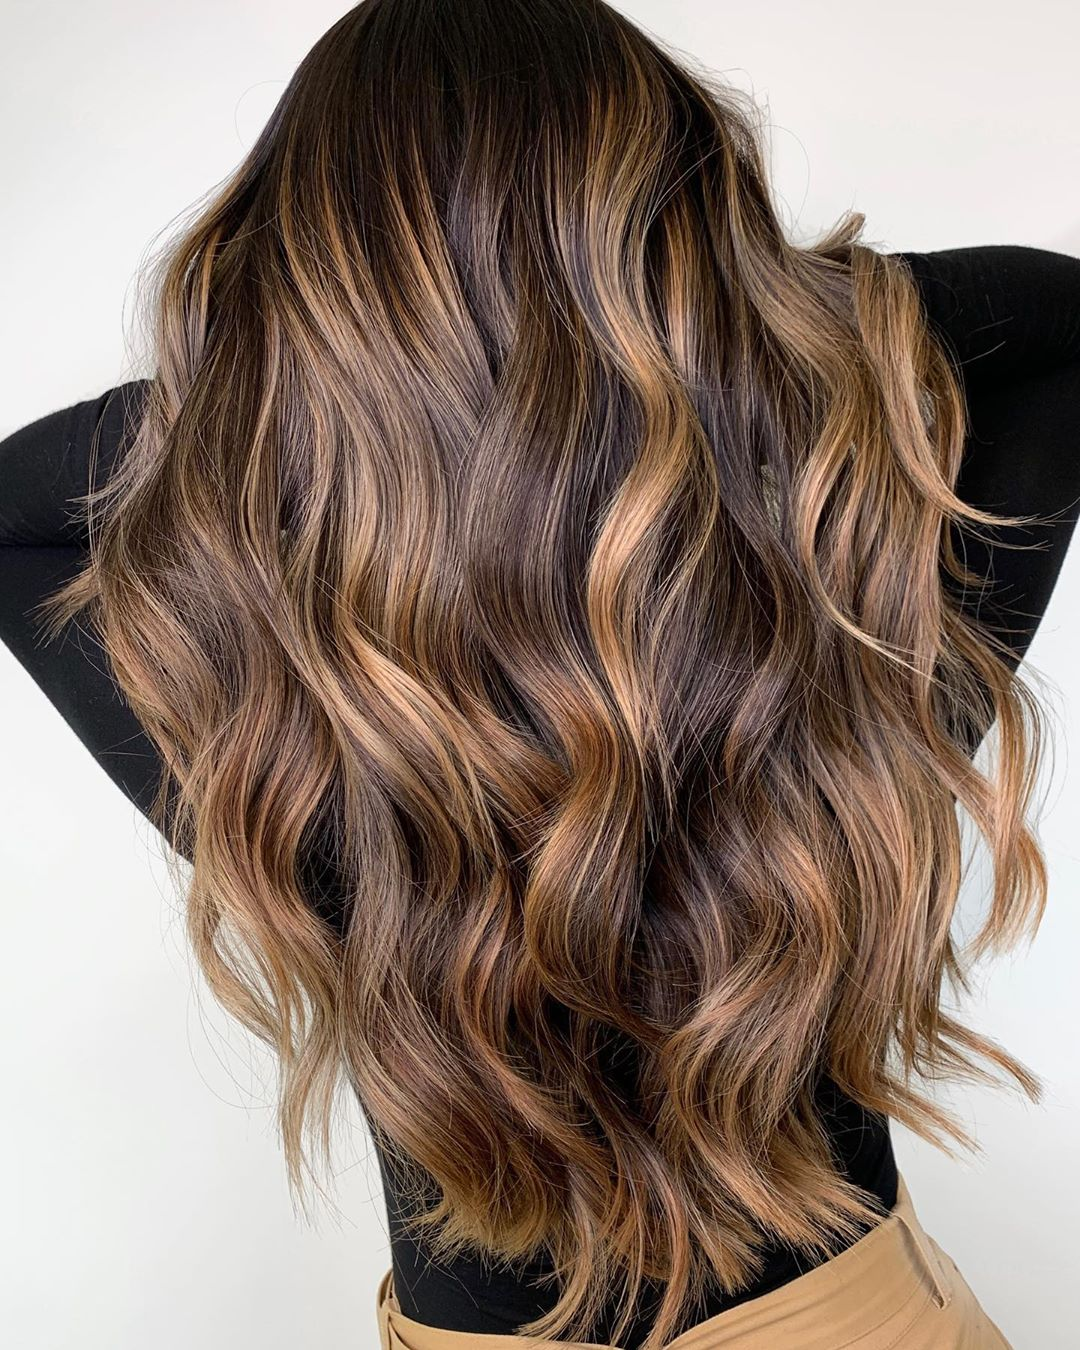 50 Best Hair Colors New Hair Color Ideas Trends For 2020 Hair Adviser